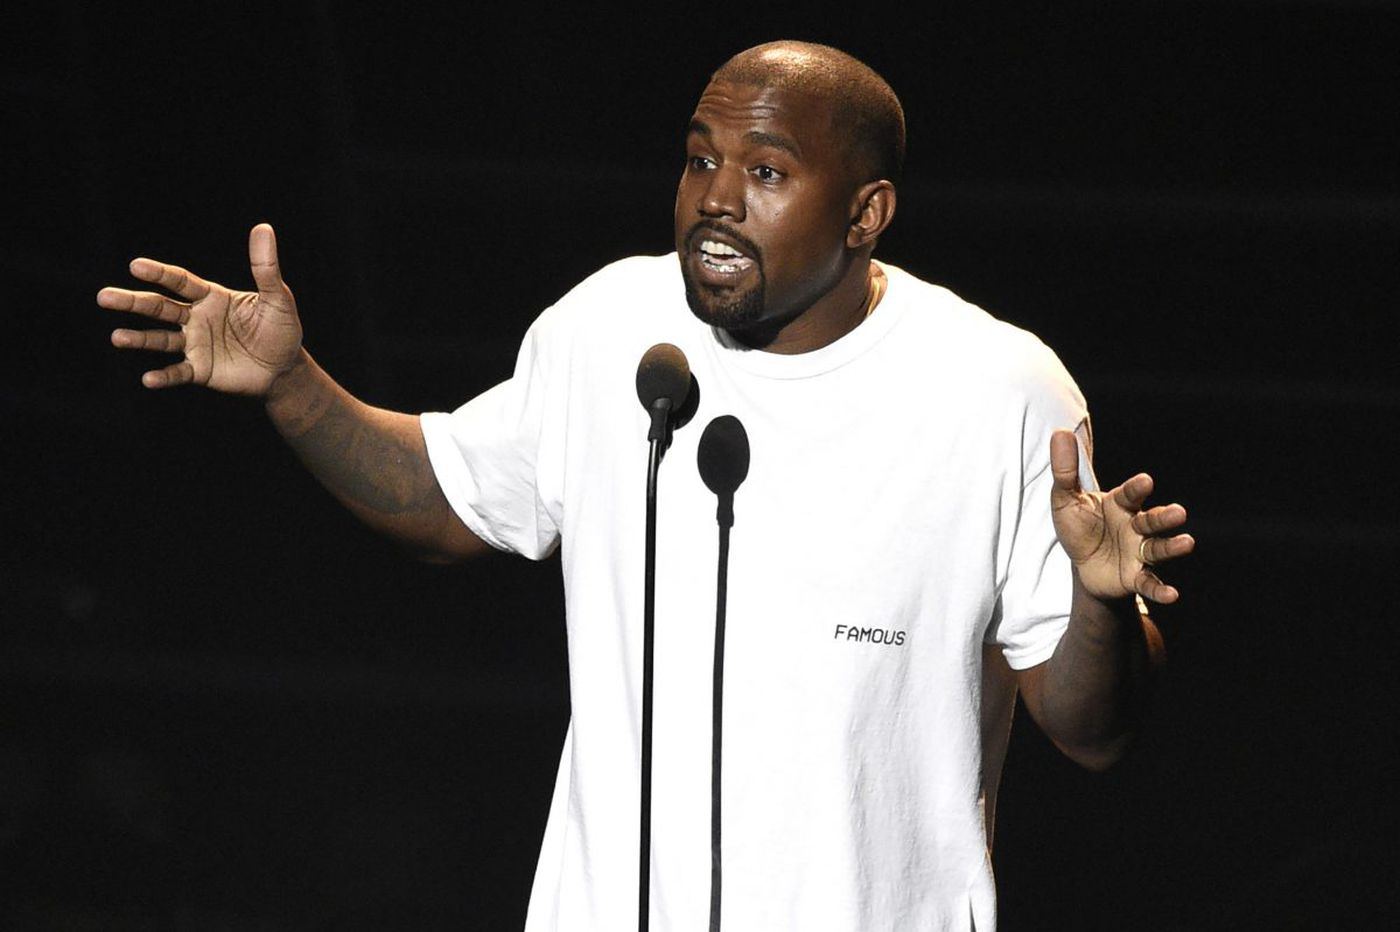 Kanye West partners with Gap to create fashion line